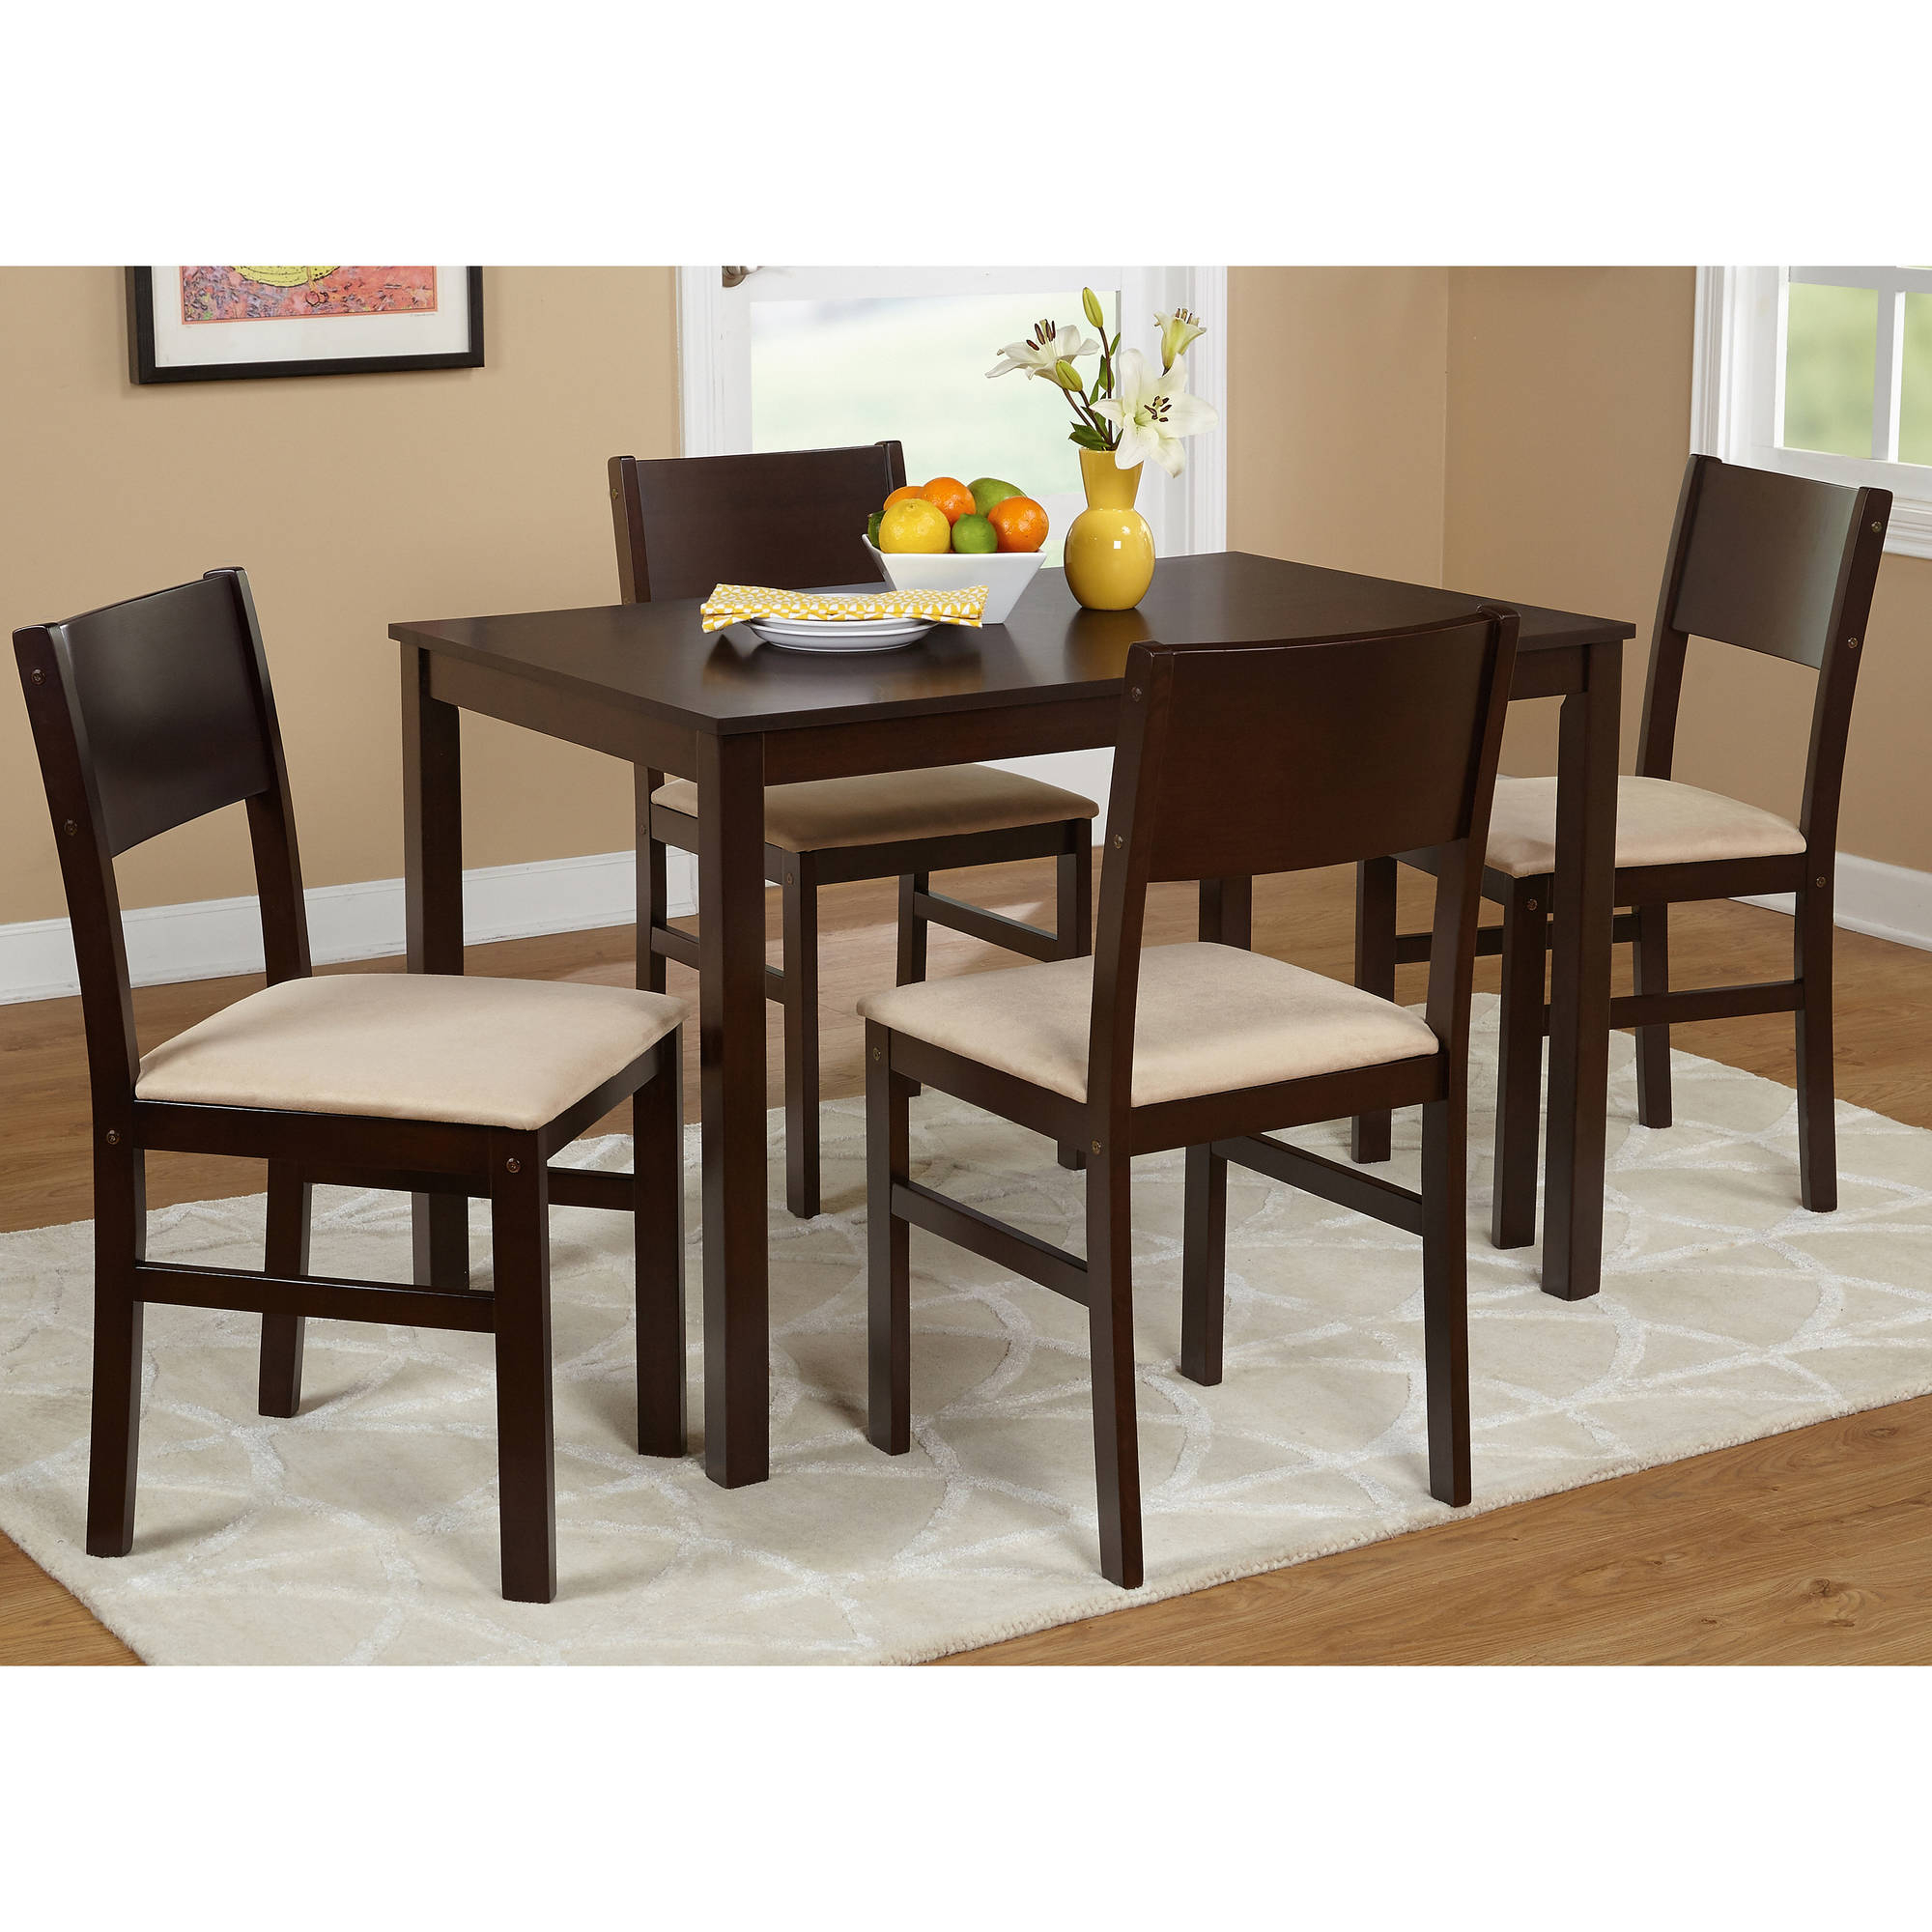 Tms Lucca 5 Piece Dining Set, Multiple Colors Throughout Most Recently Released 5 Piece Dining Sets (View 4 of 20)